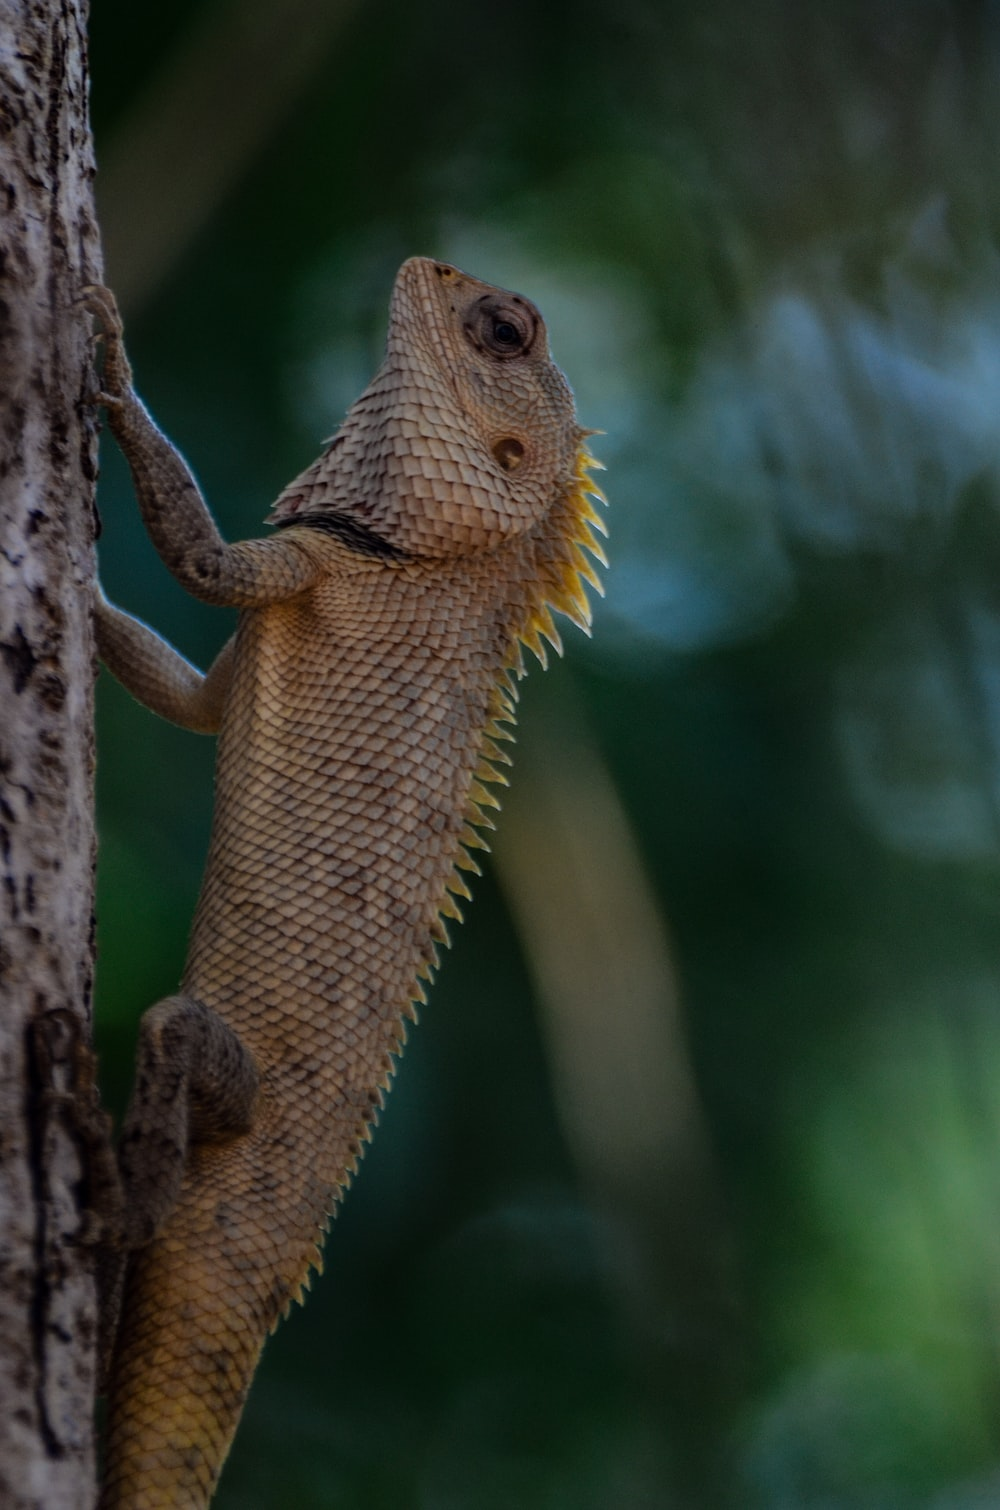 brown and yellow bearded dragon on brown tree branch during daytime